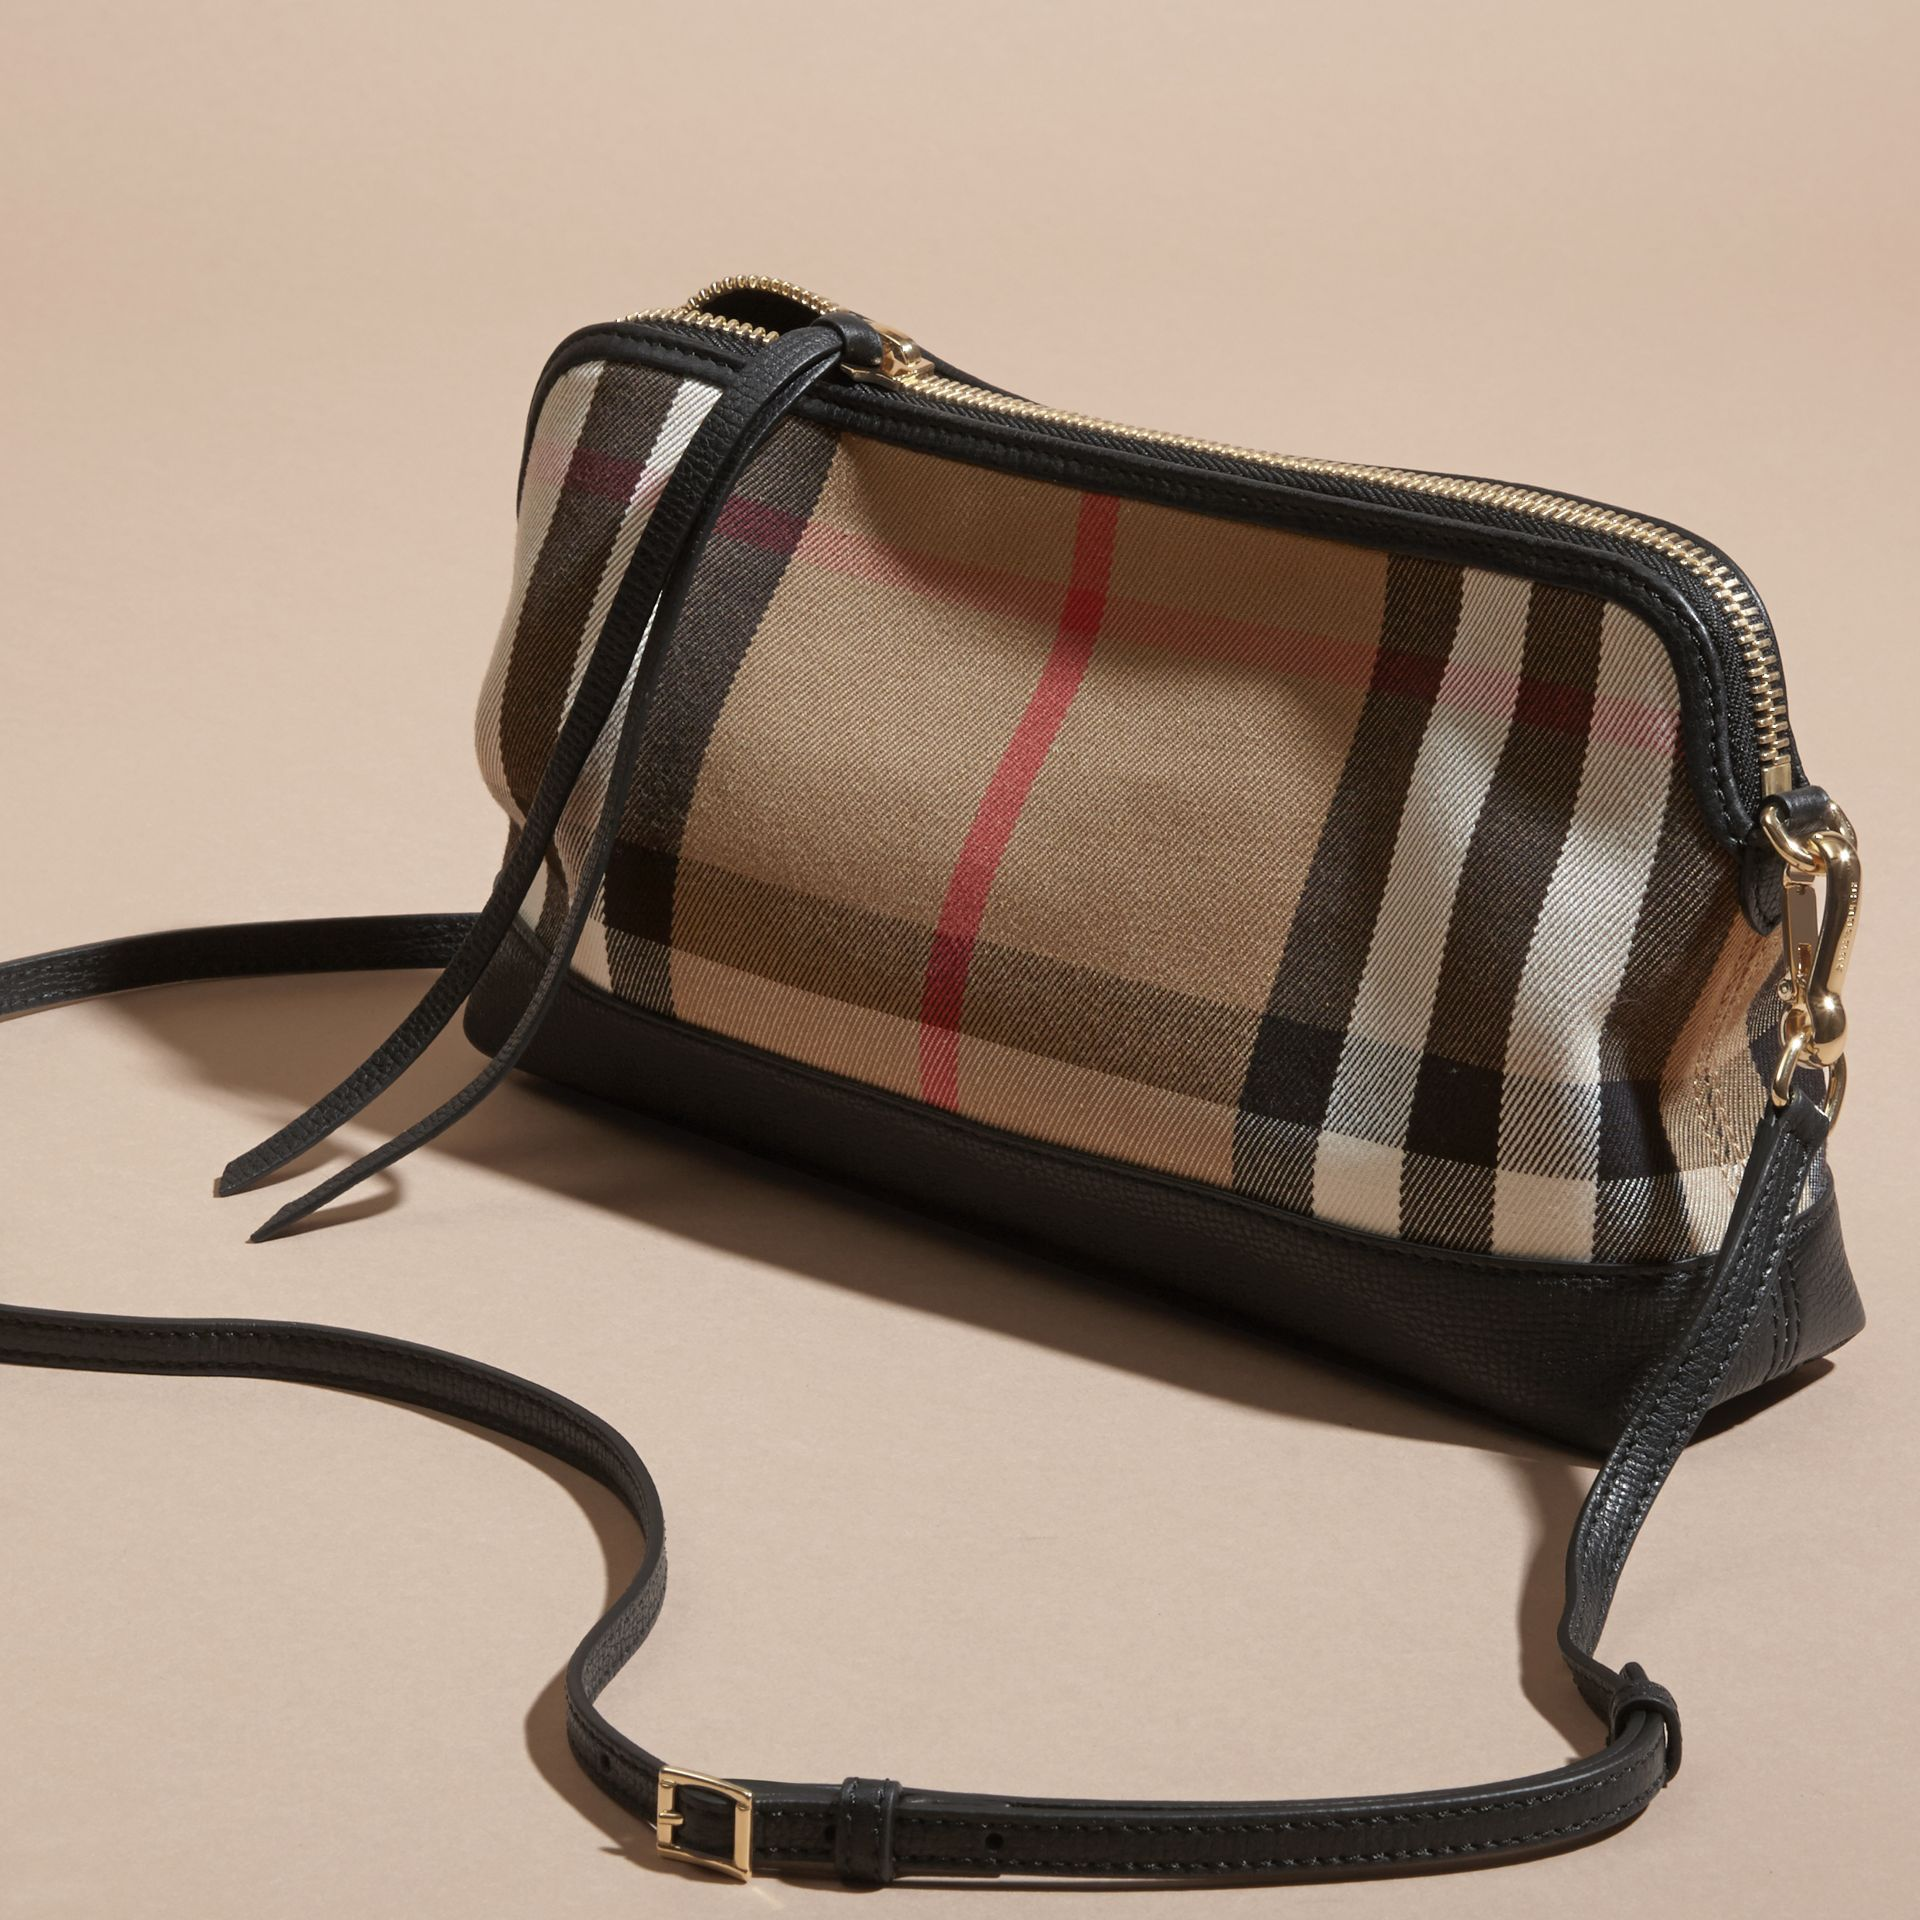 House Check and Leather Clutch Bag in Black - Women | Burberry Canada - gallery image 8